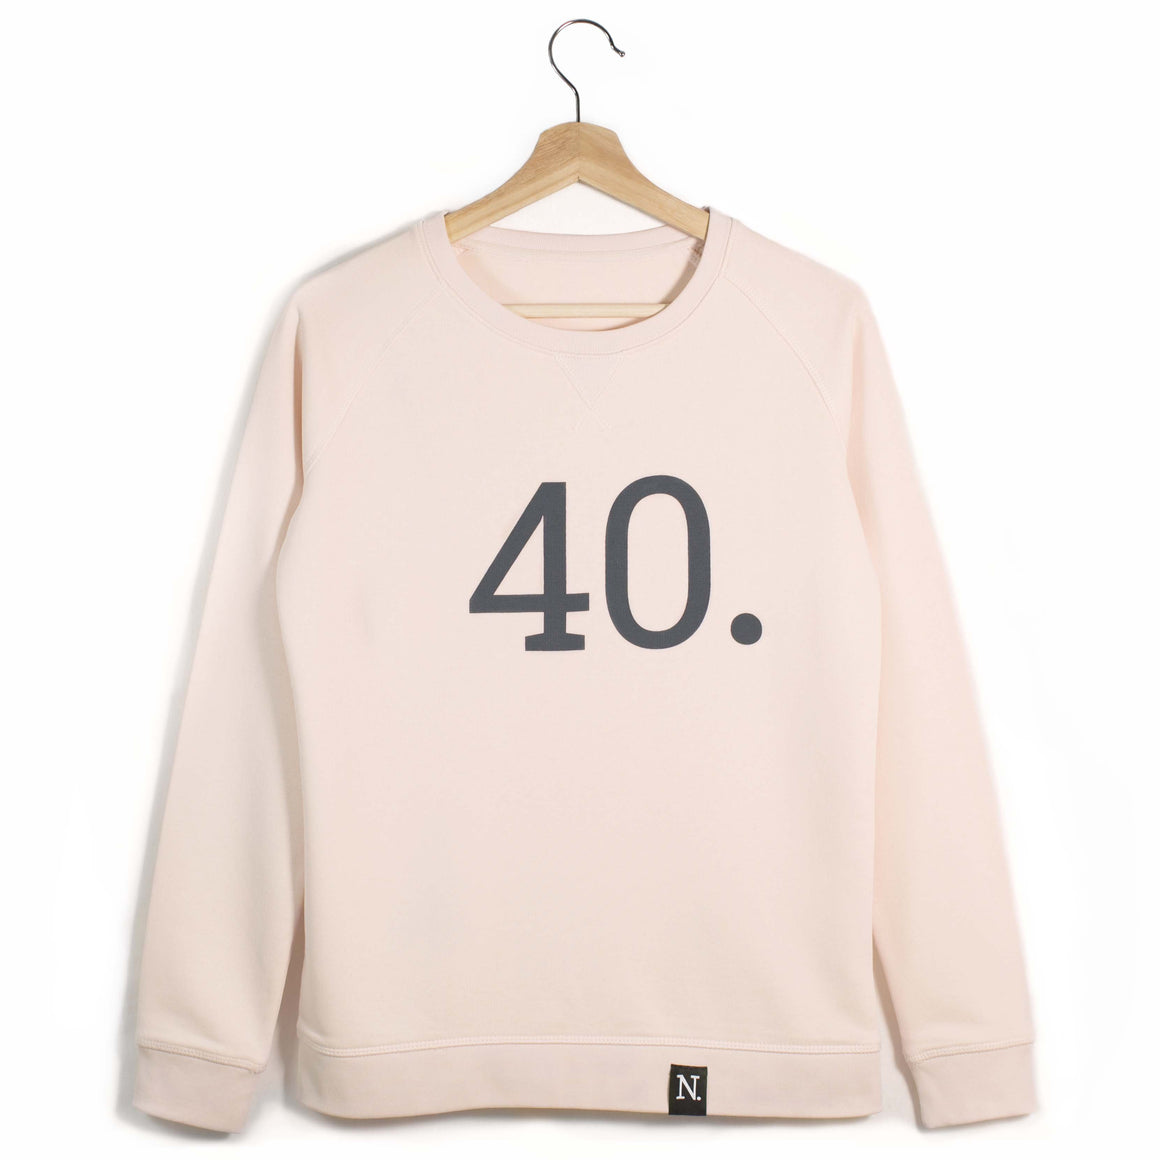 The Number 40 pink sweatshirt front